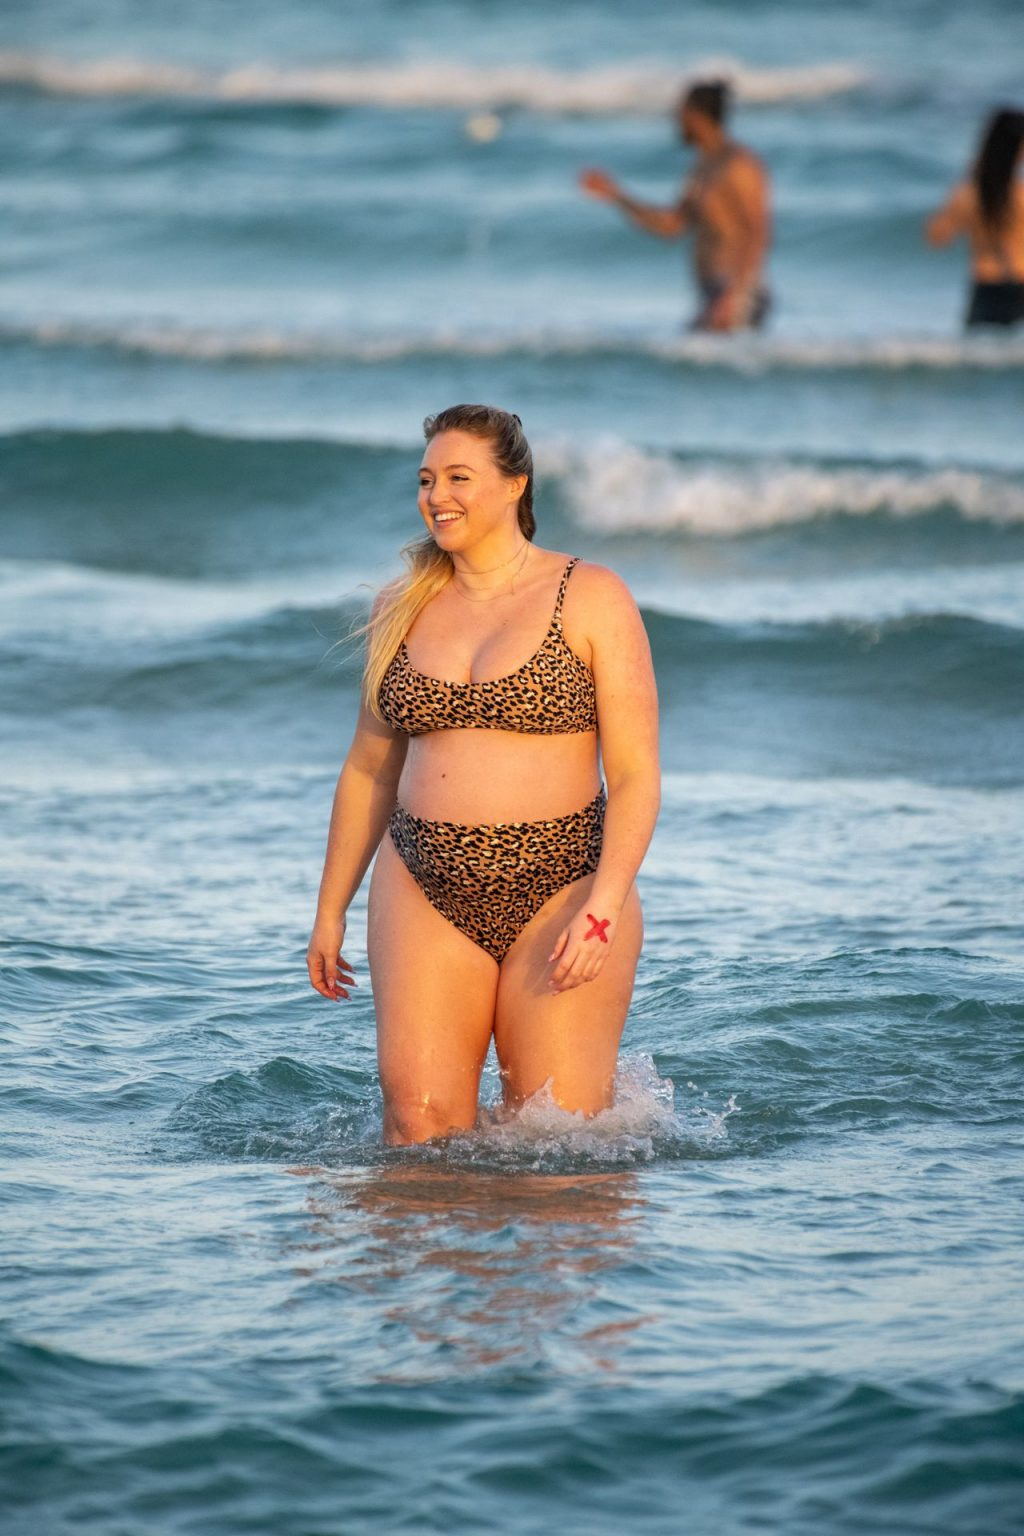 Iskra Lawrence Sexy The Fappening Blog 18 1024x1536 - Heavily Pregnant Model Iskra Lawrence Takes A Sunset Dip In Miami Beach (44 Photos)